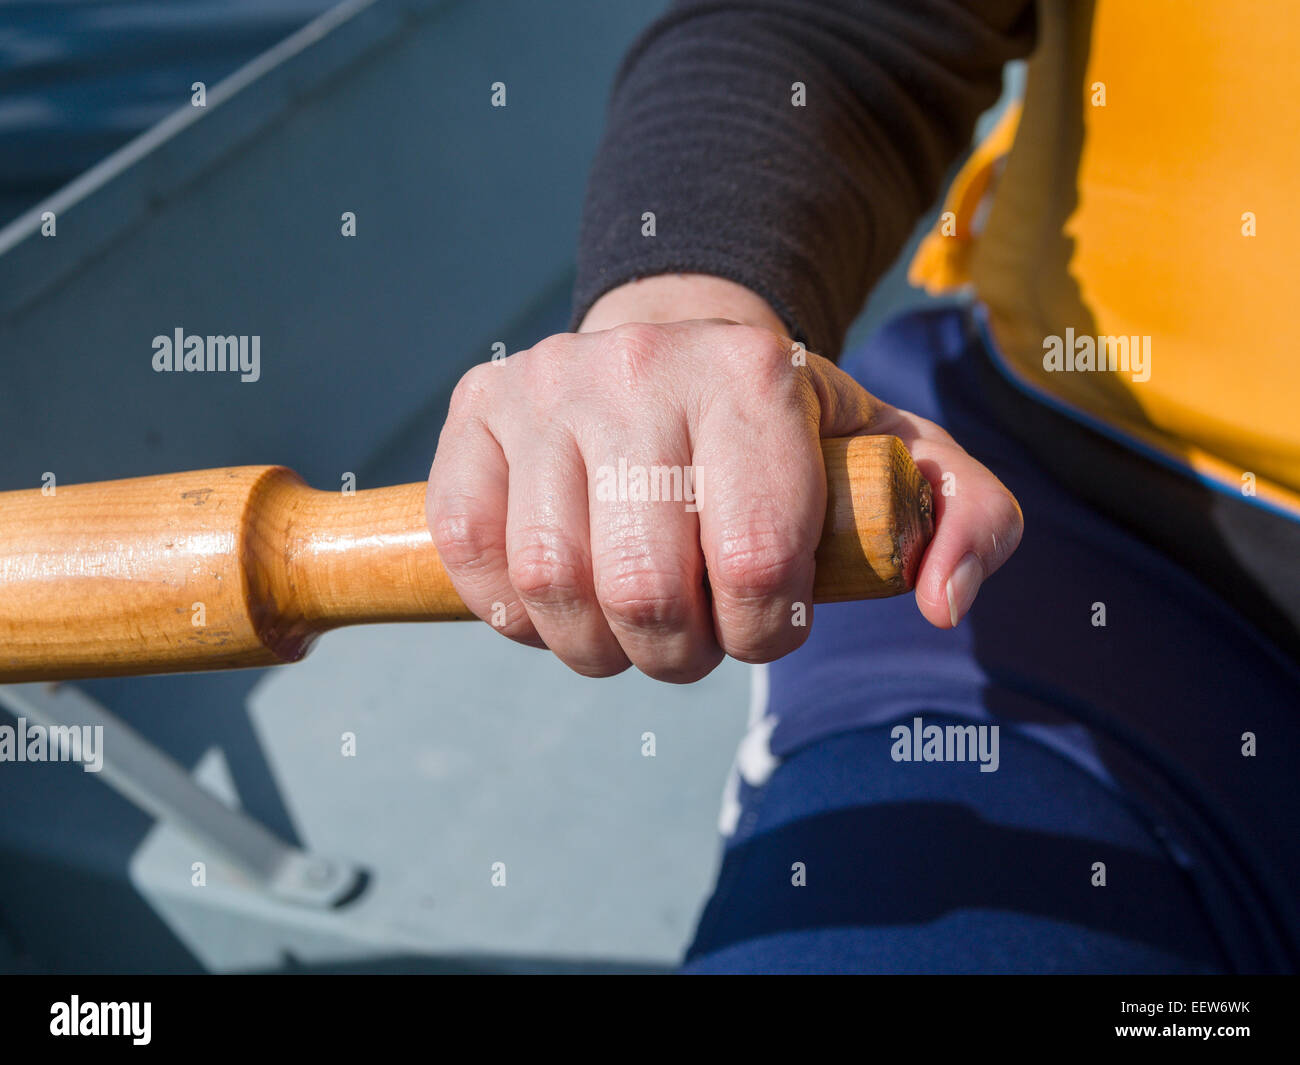 Hand holding an Oar and Rowing. A woman's hand on an boat's oar, rowing the boat. - Stock Image